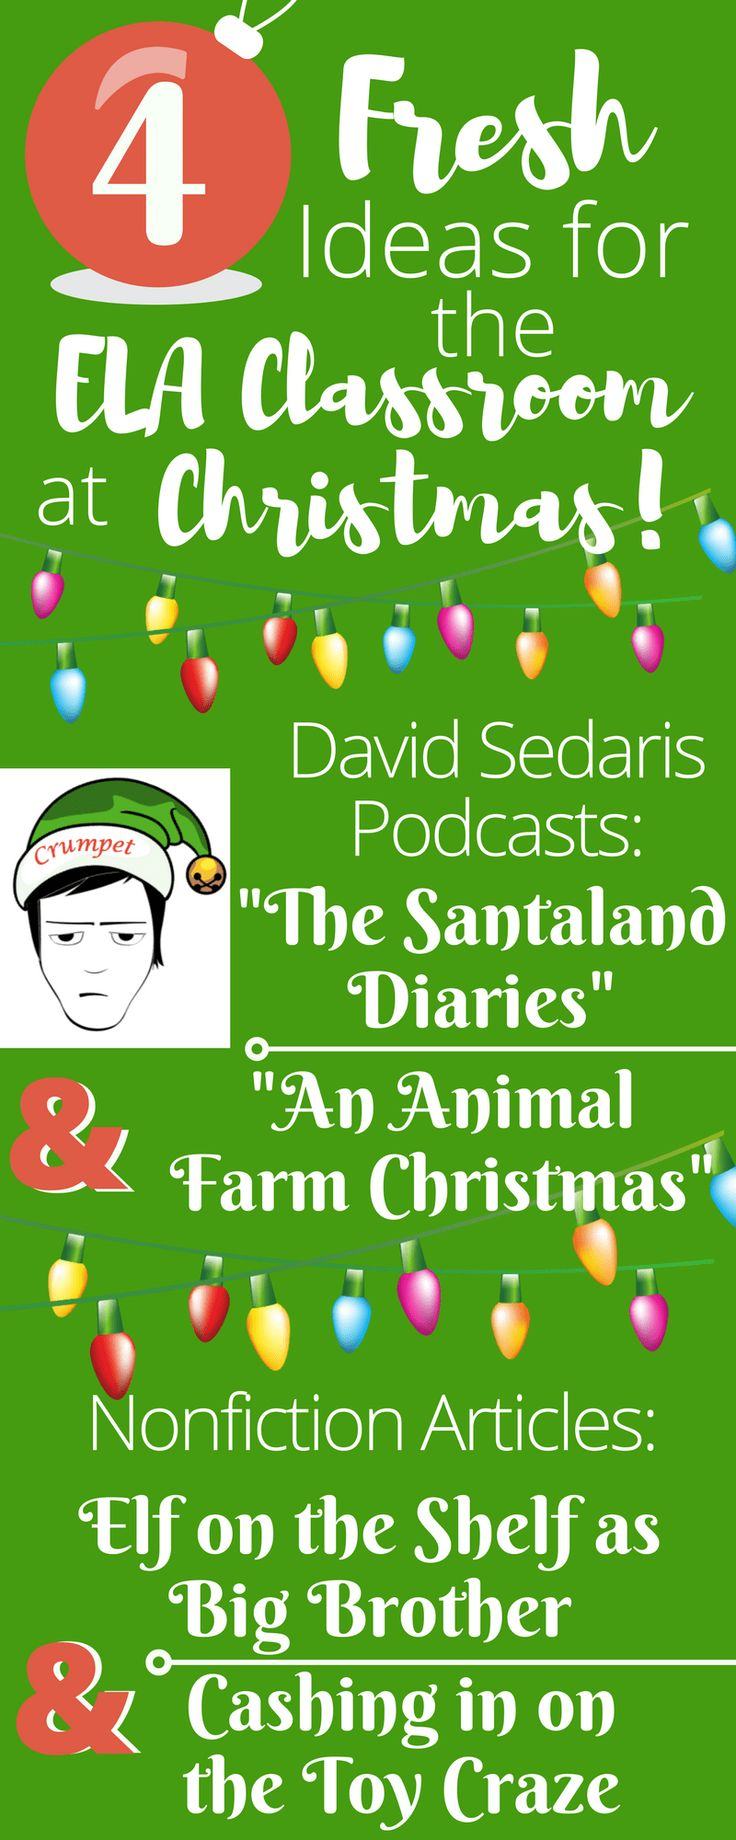 A few fresh ideas to bring Christmas topics to your secondary ELA classroom: David Sedaris podcasts and informational texts on controversial holiday topics like Elf on the Shelf as Big Brother and opening stores on Thanksgiving.